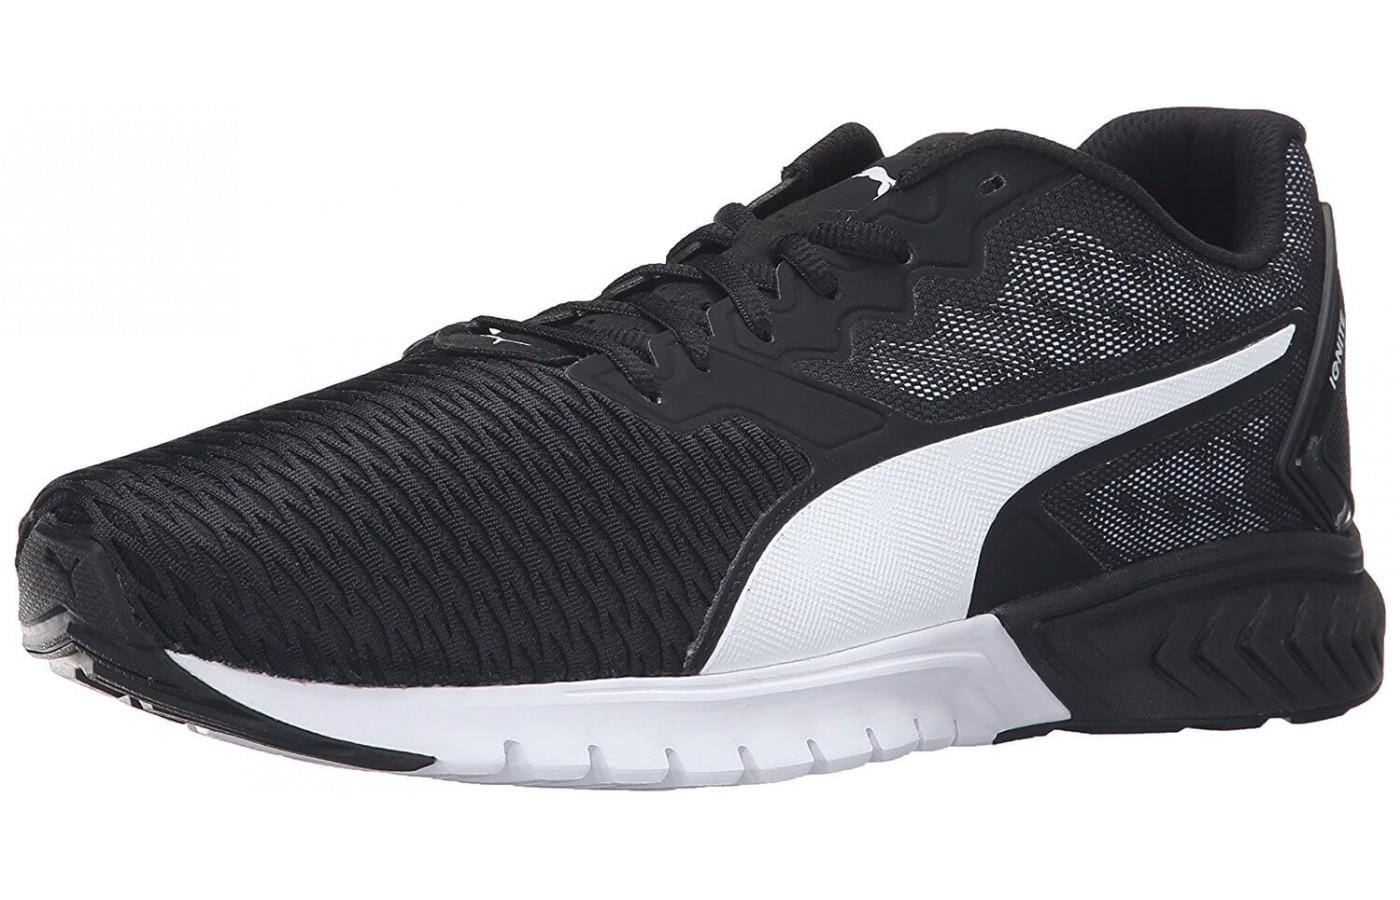 the Puma Ignite Dual is an affordable, stylish trainer